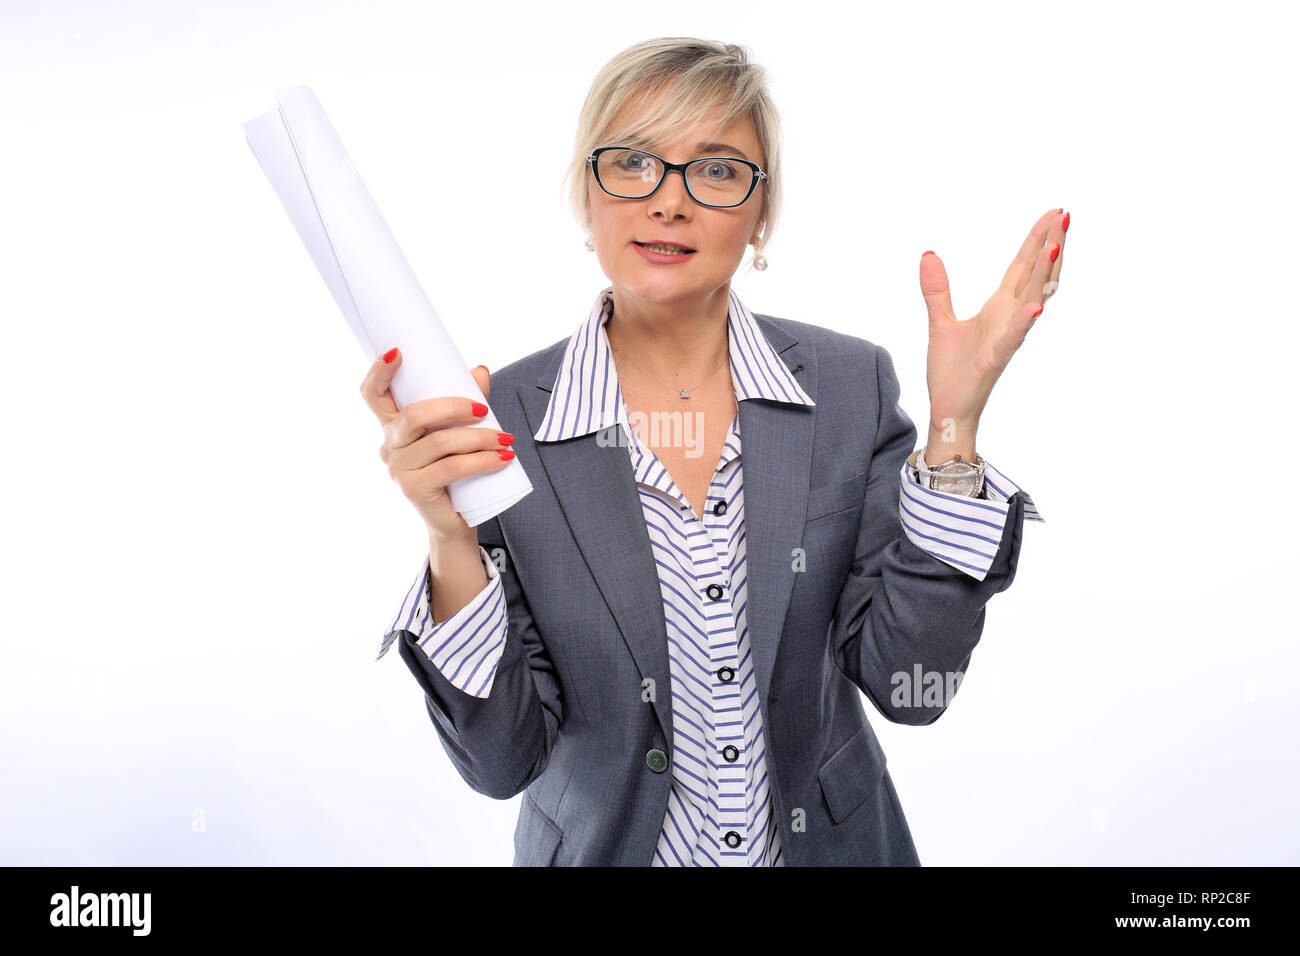 A middle-aged teacher, 40 years old, in a white striped shirt, gray suit and glasses, with a red manicure, holding white paper on a white background - Stock Image